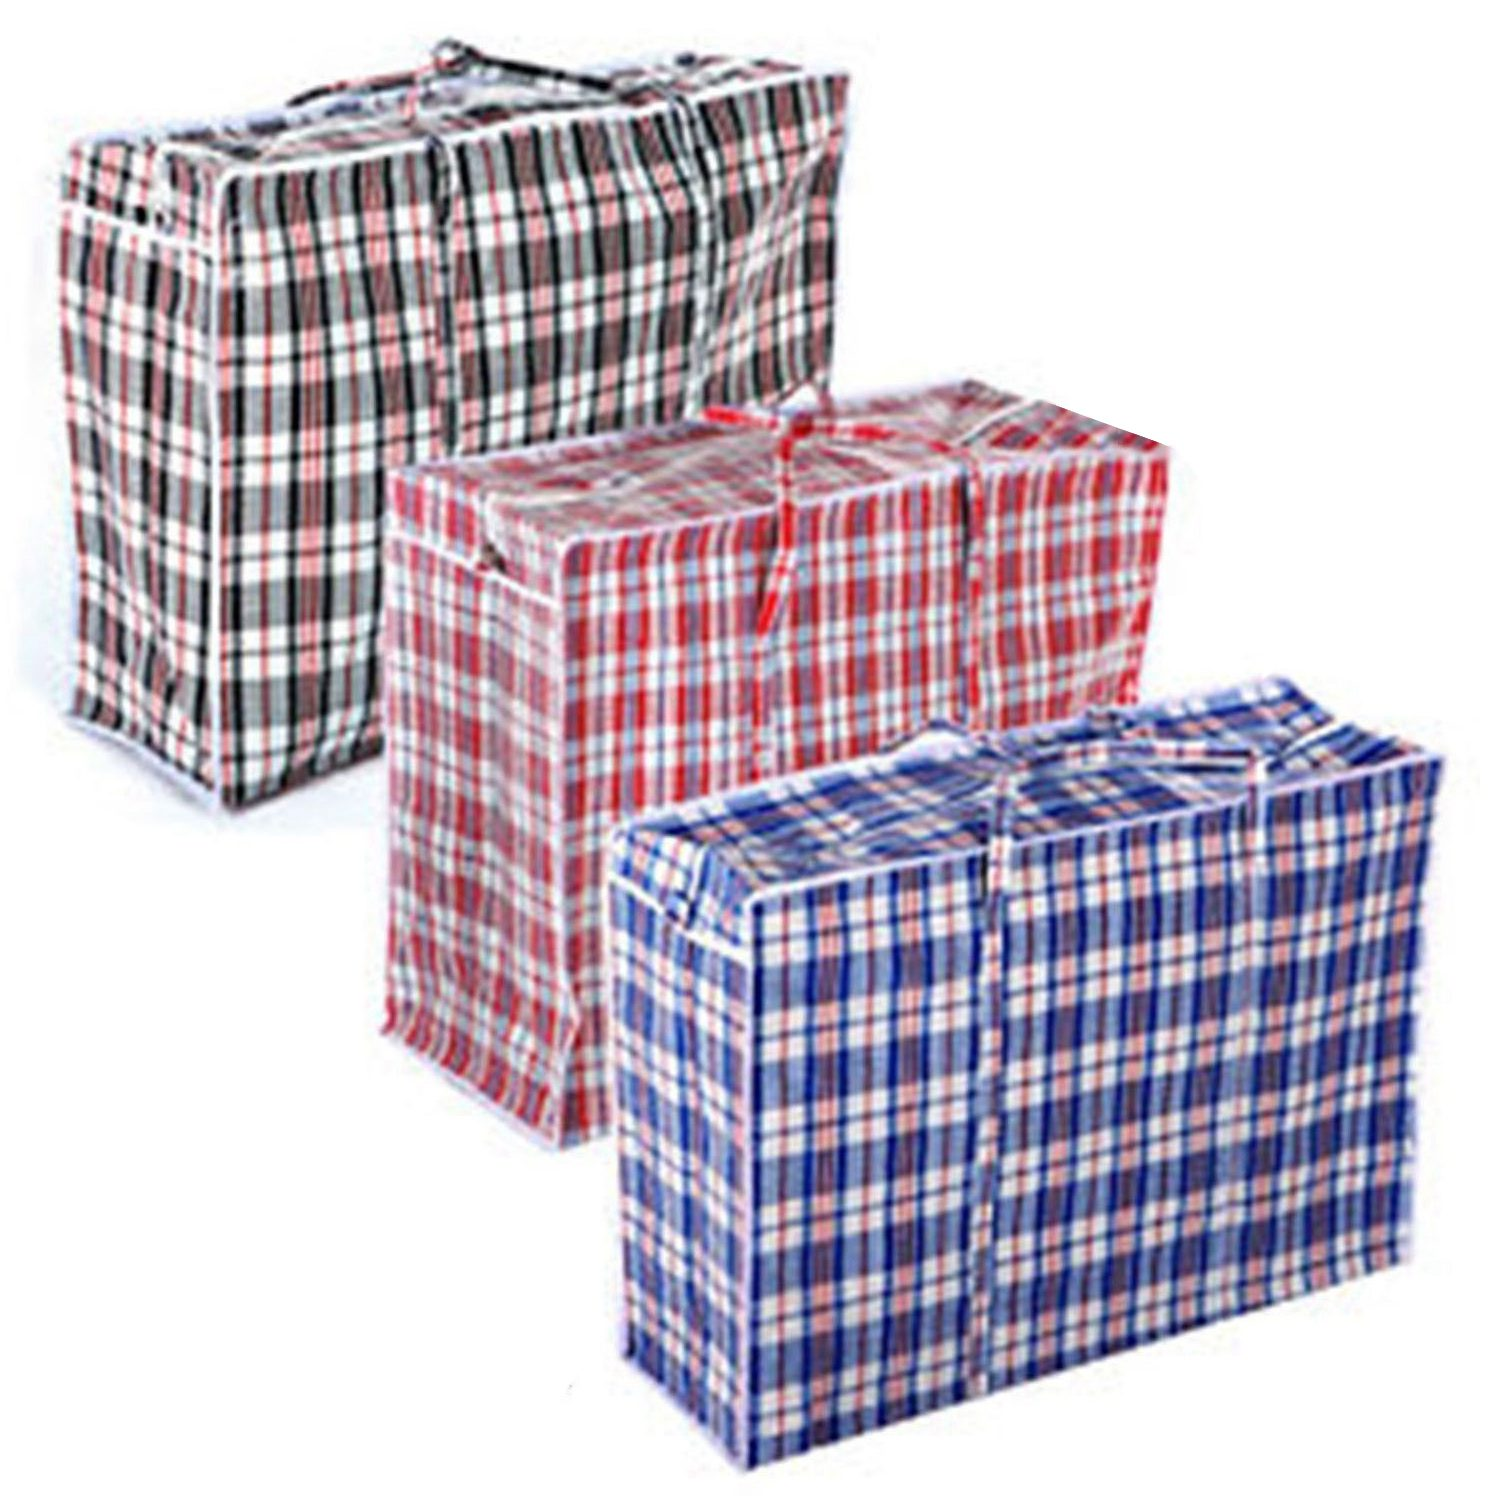 ABDB-LAUNDRY SHOPPING ZIPPED BAG REUSABLE ZIPPERED STORAGE LUGGAGE TOTE BAGS, 1*Large: 80*20*60cm